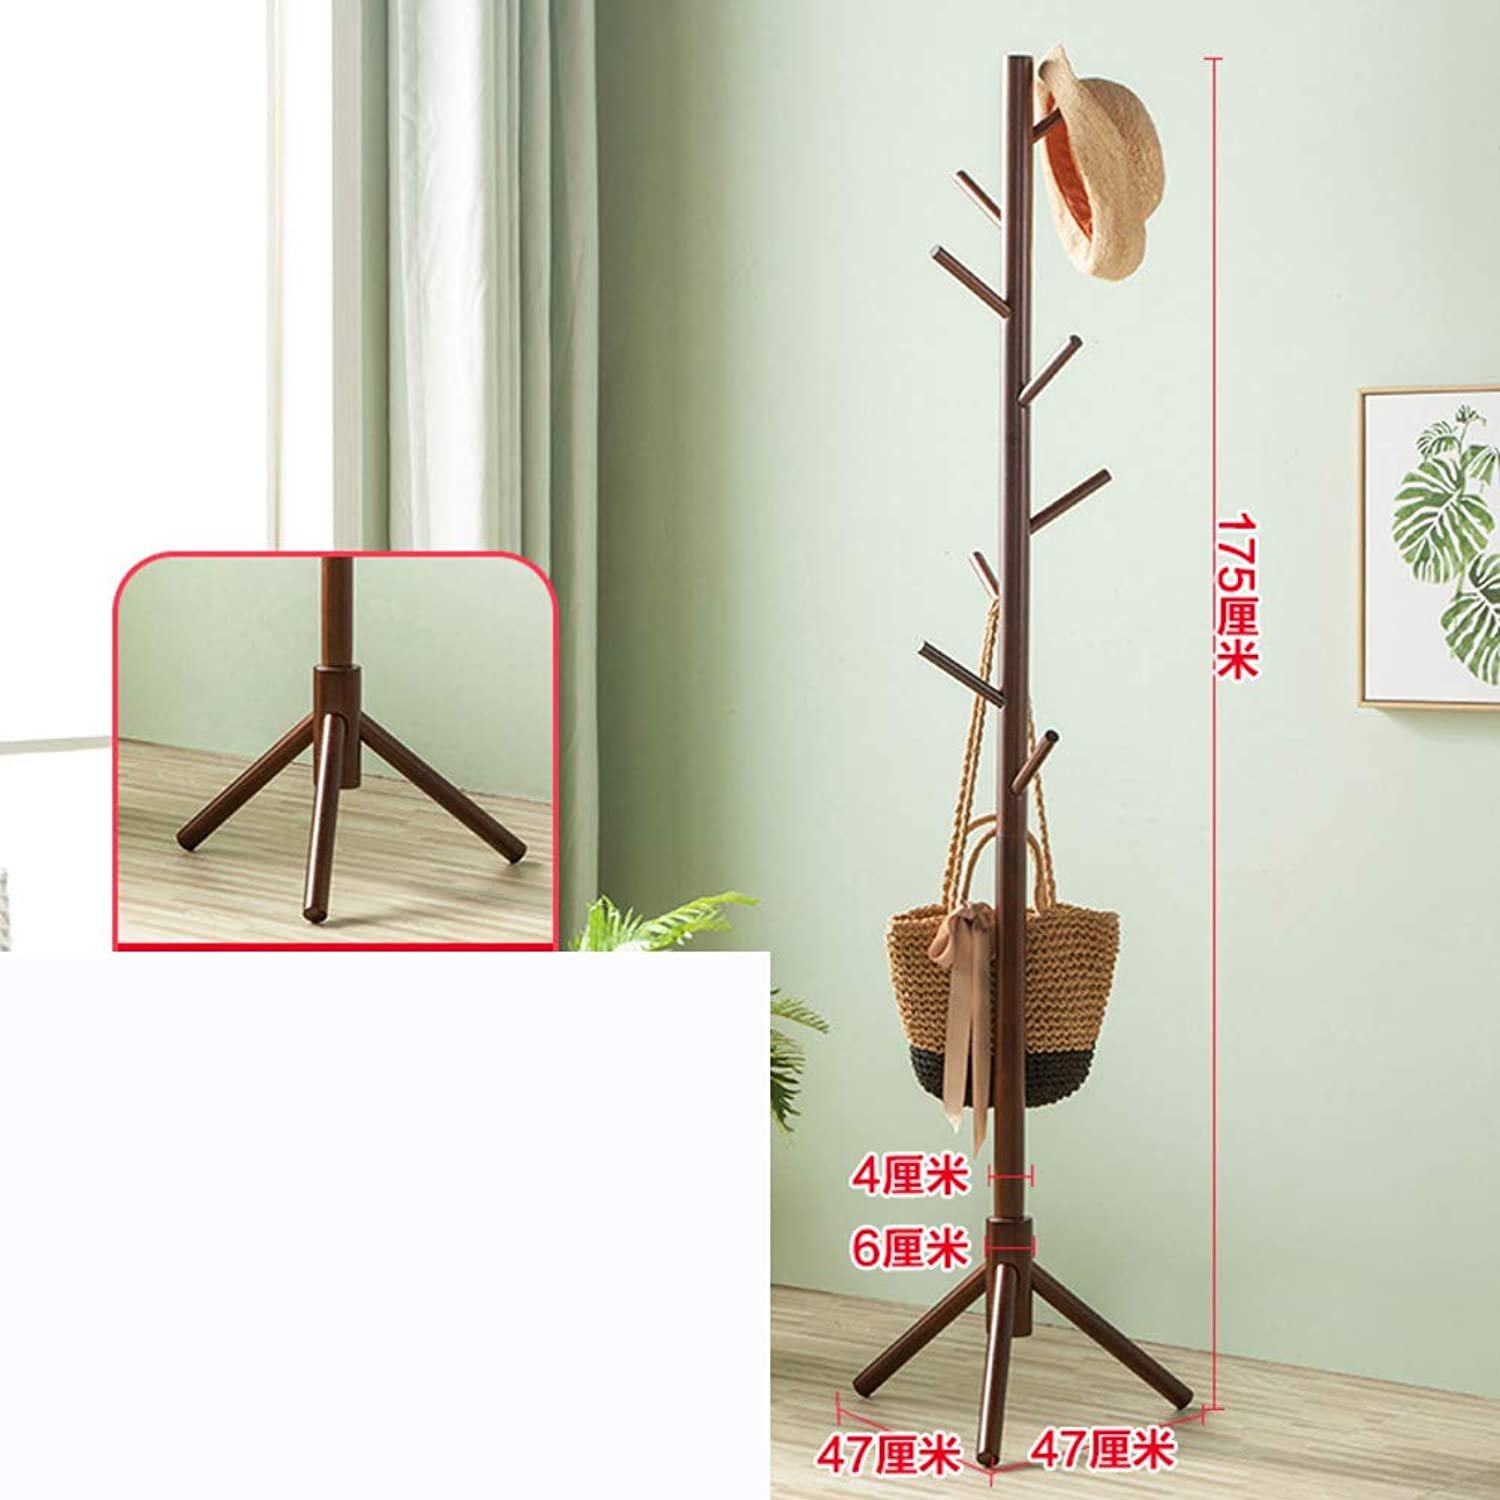 Free Standing Coat and hat Rack, Wood Jacket Clothes Hanger Bag Umbrella Hanging Organiser Tree Clothes Hook for Bedroom Home Room Office-F